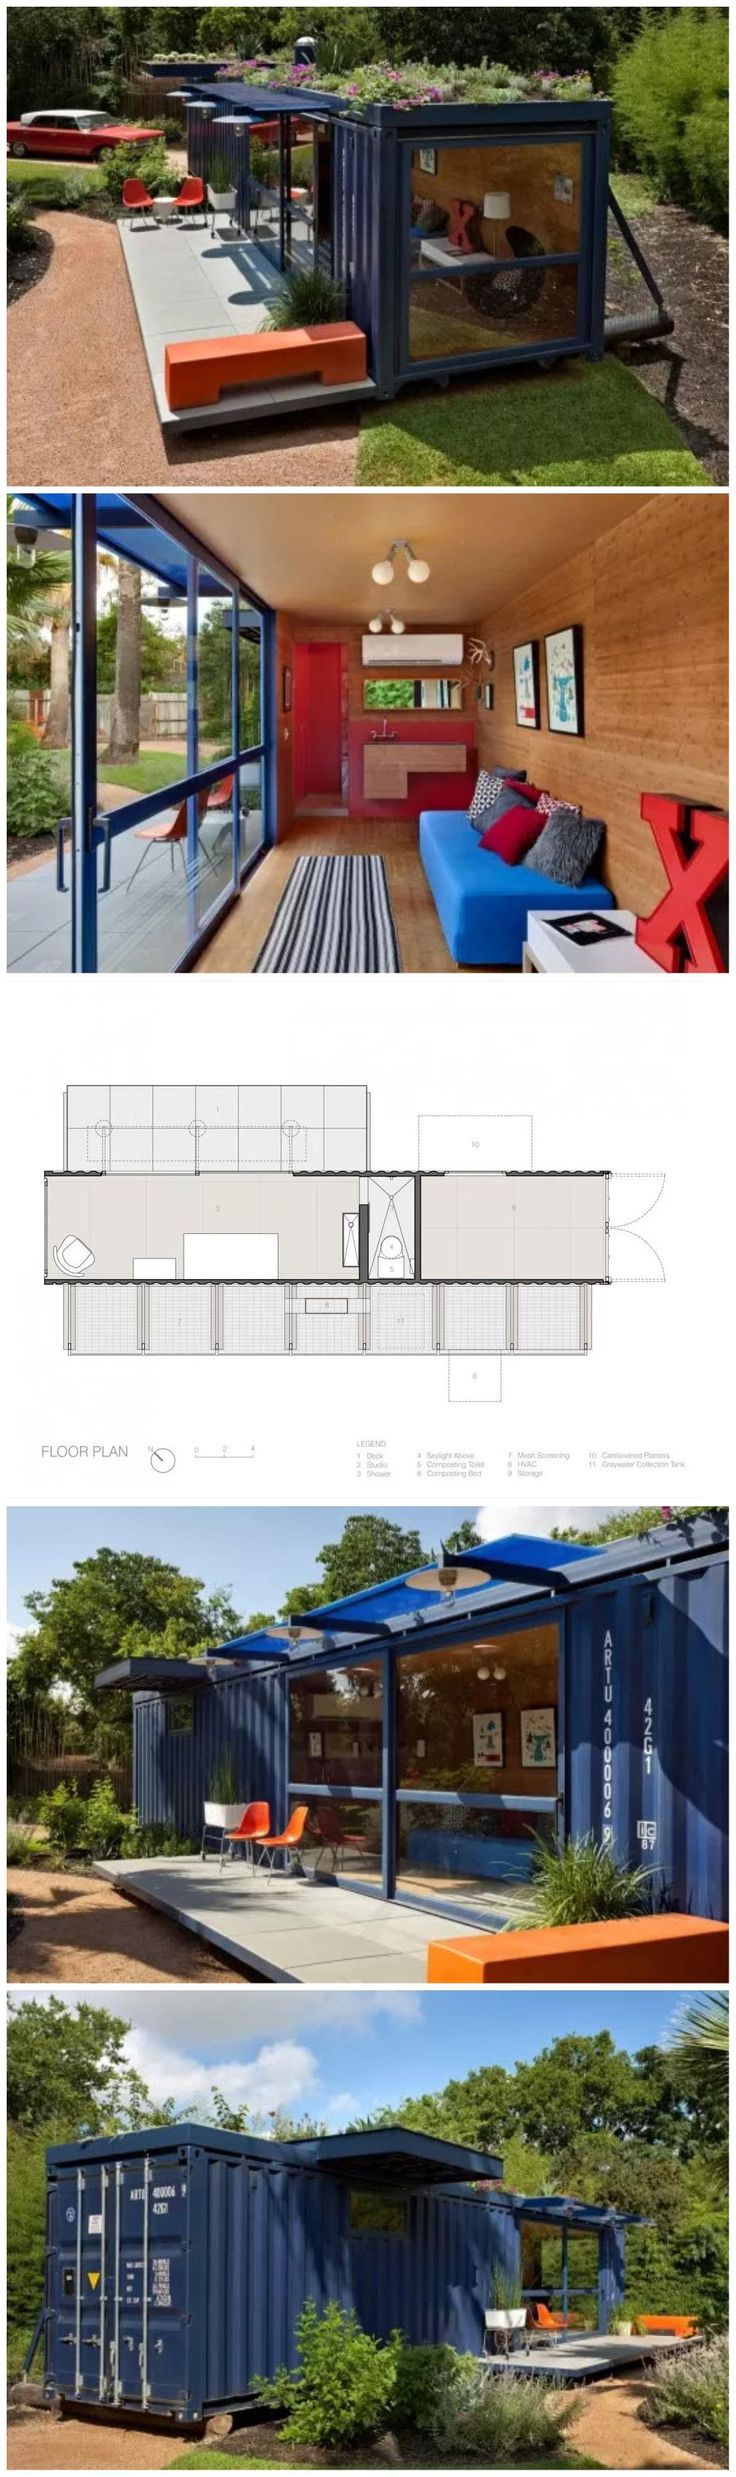 Shipping Container Sustainable House - Add solar panels and plants on roof...x